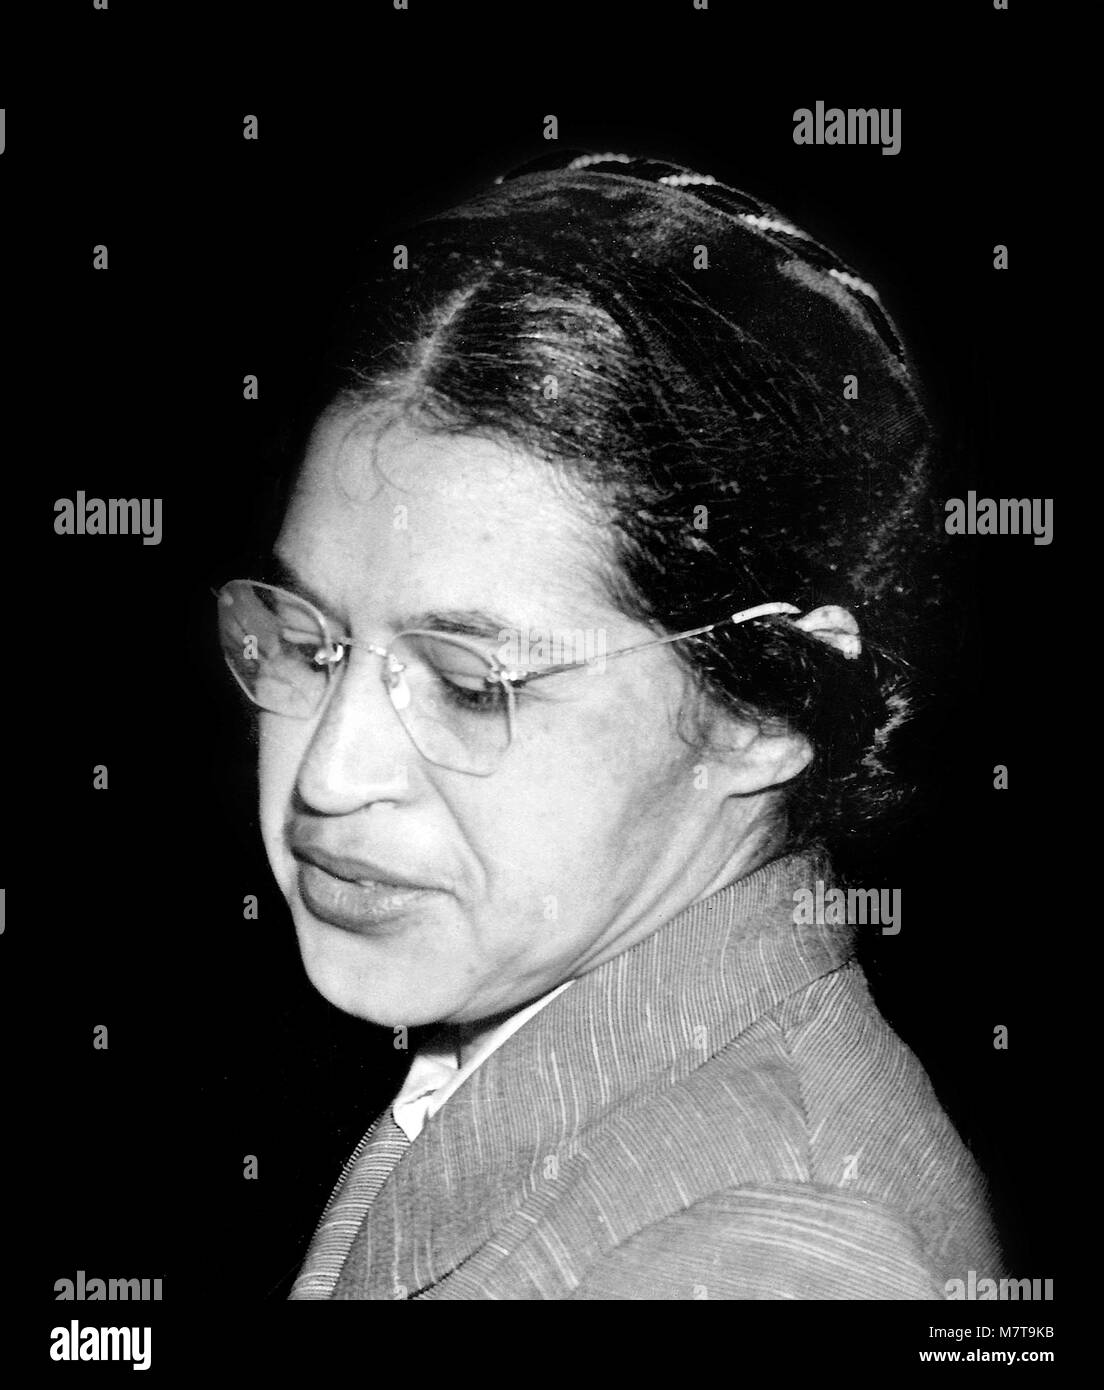 hight resolution of rosa parks 1913 2005 stock image